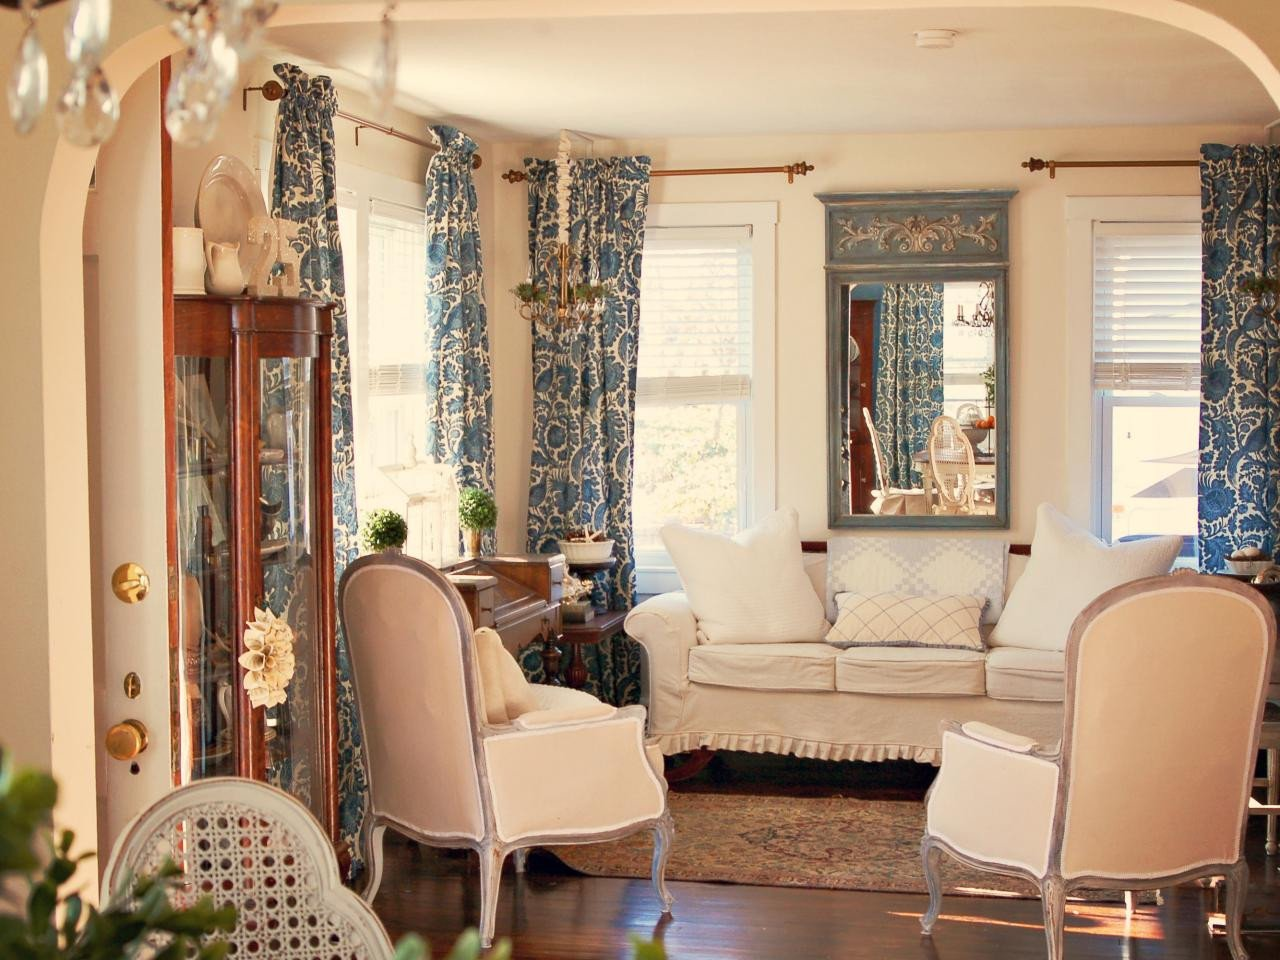 French Country Decor Living Room French Inspired Design From Hgtv